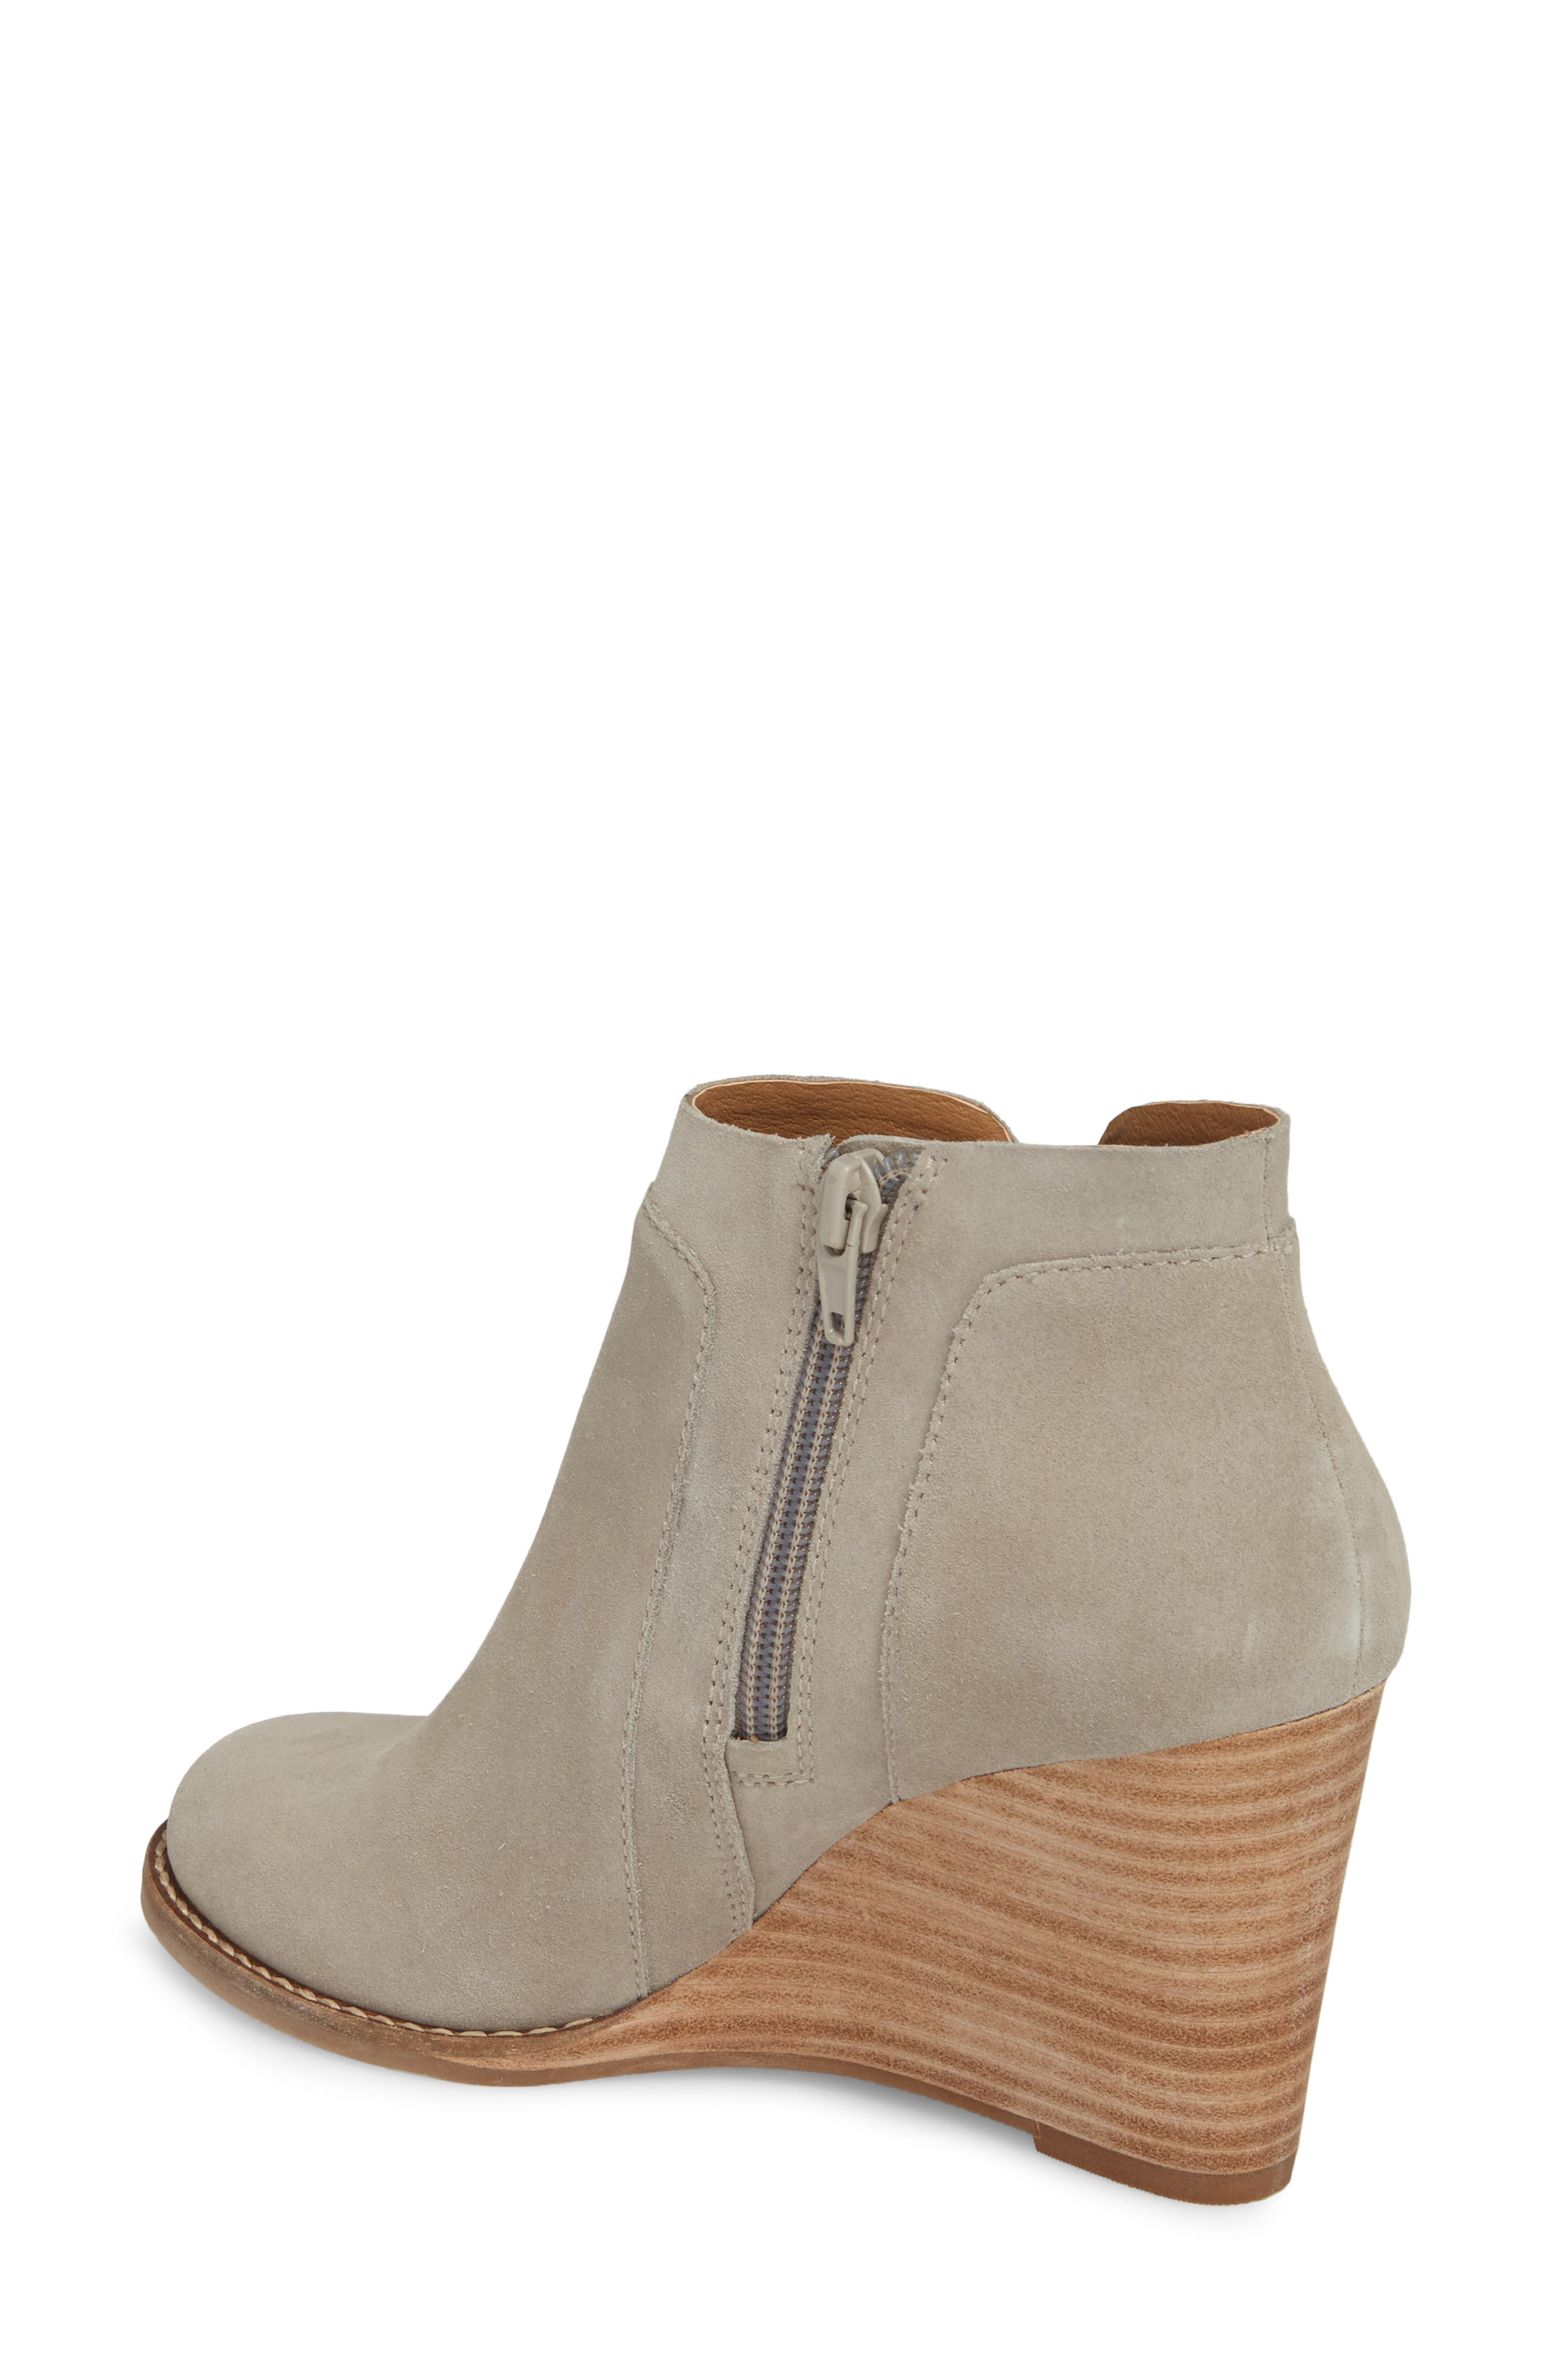 Yabba Wedge Bootie,                             Alternate thumbnail 2, color,                             Grey Suede